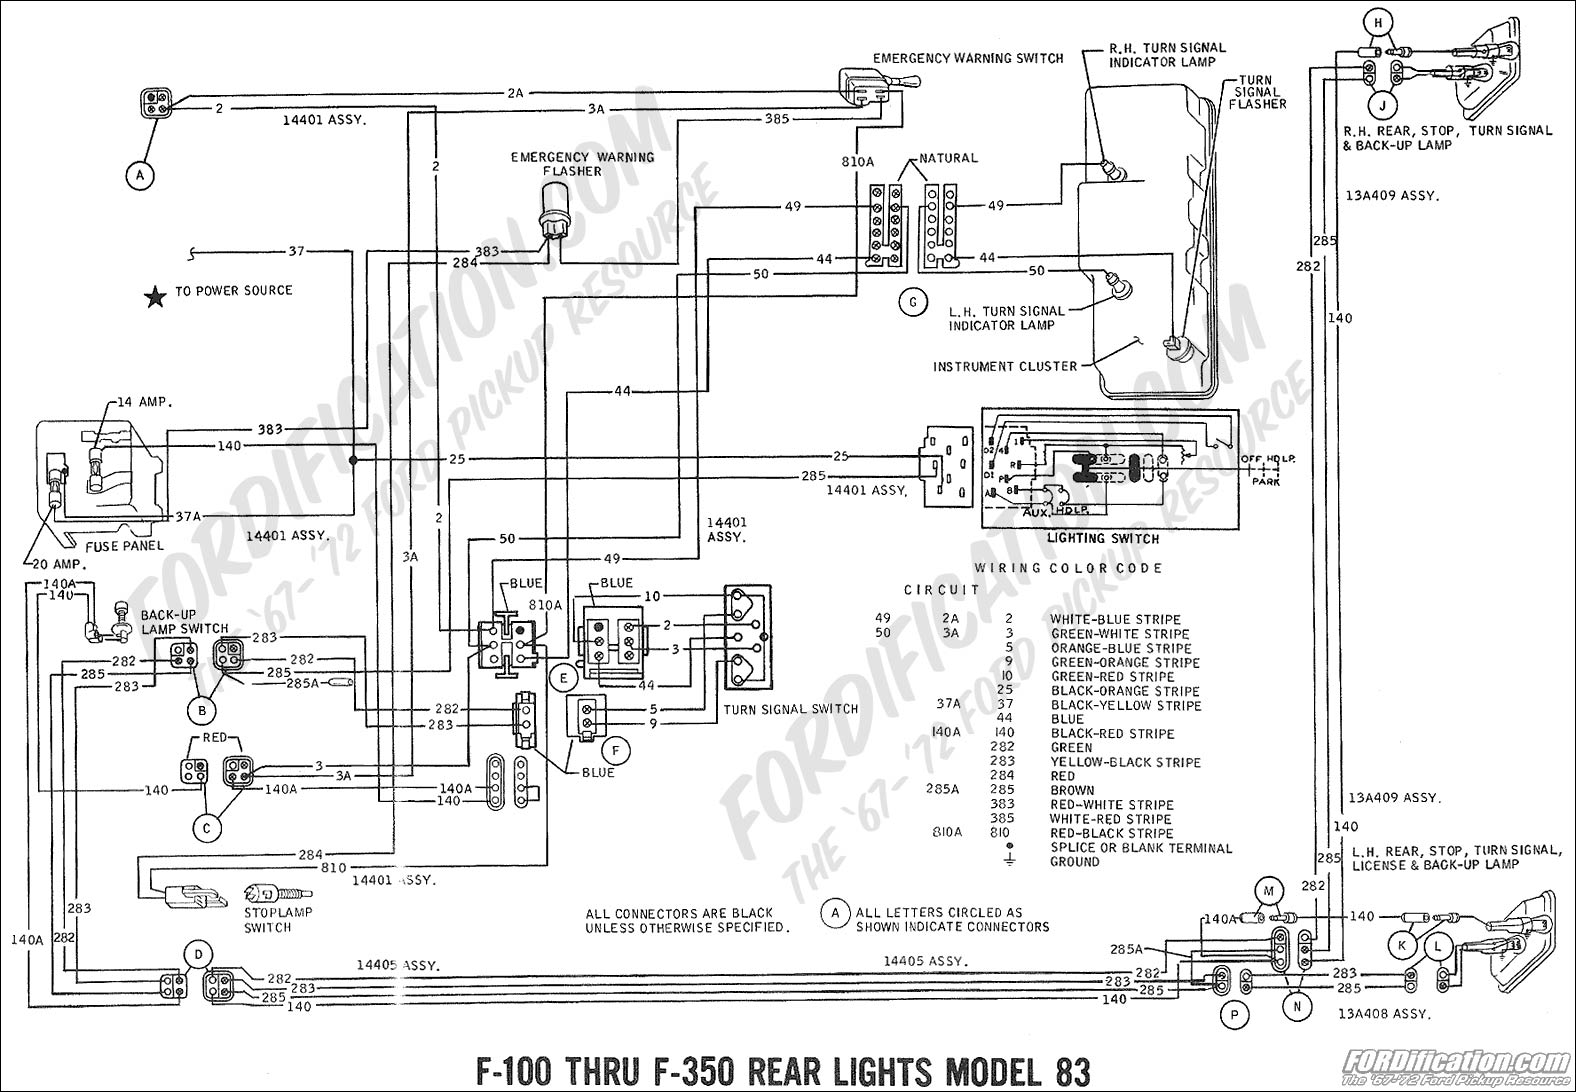 wiring_69rearlights mdl83 2 1977 ford f100 alternator wiring diagram wiring diagram and 1969 Ford F100 Steering Column Wiring Diagram at crackthecode.co